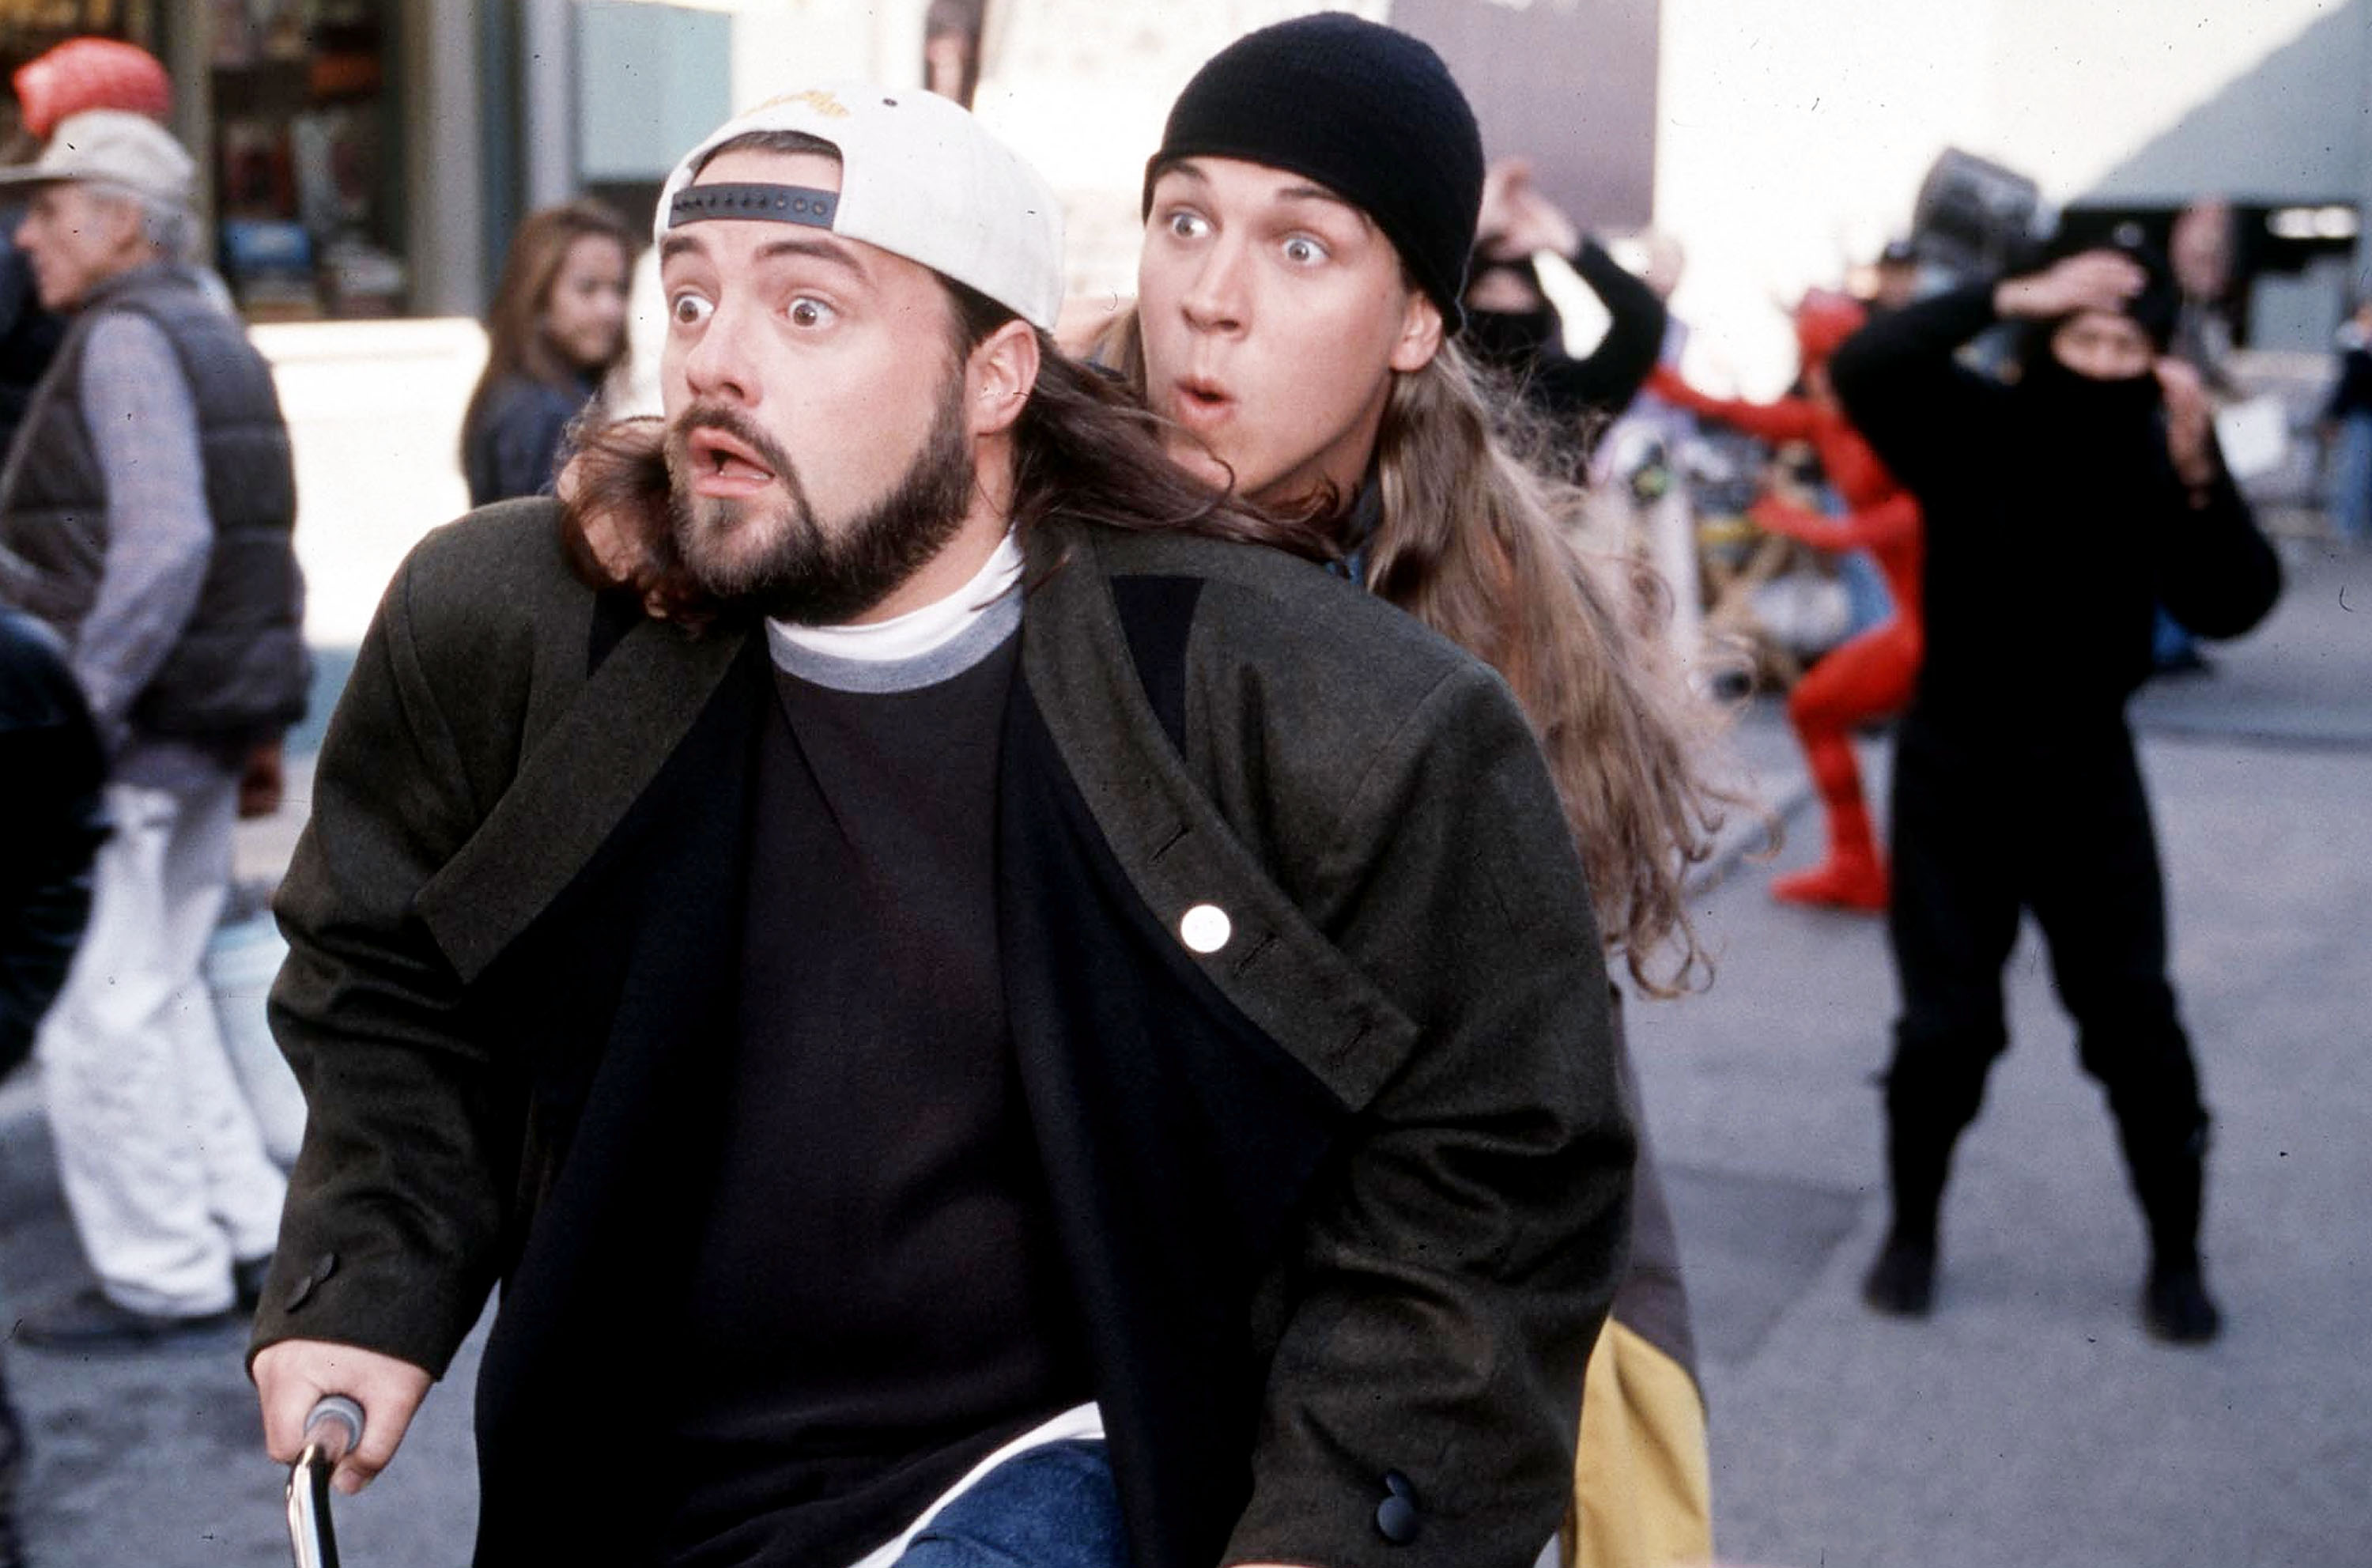 Kevin Smith And Jason Mewes Of Jay And Silent Bob Coming To